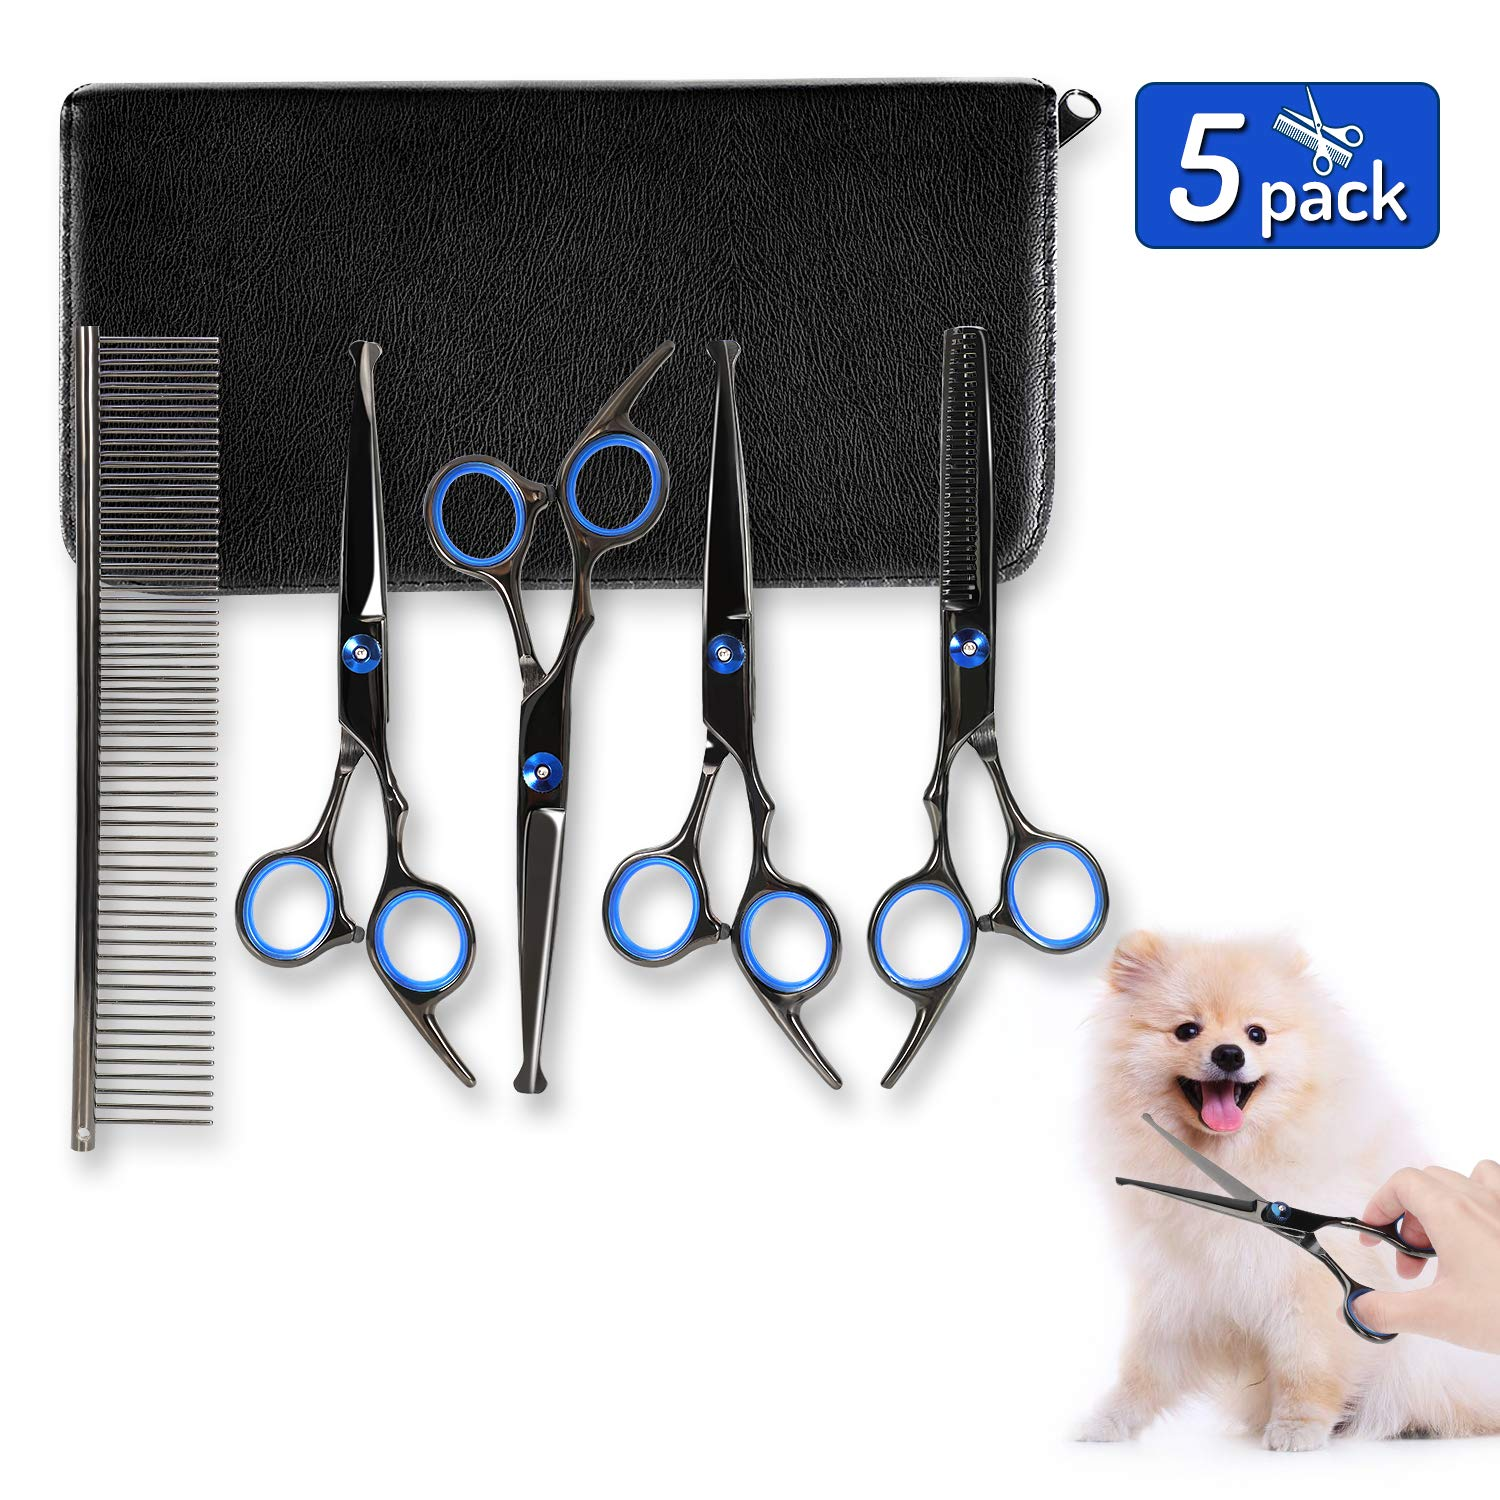 Dog Grooming Scissors Kit, 5 Pack Stainless Steel Professional Safe & Fast Cut Pet Grooming Scissors Set with Thinning, Straight, Curved Shear Scissor and Grooming Comb for Cutting Hair of Dog Cat